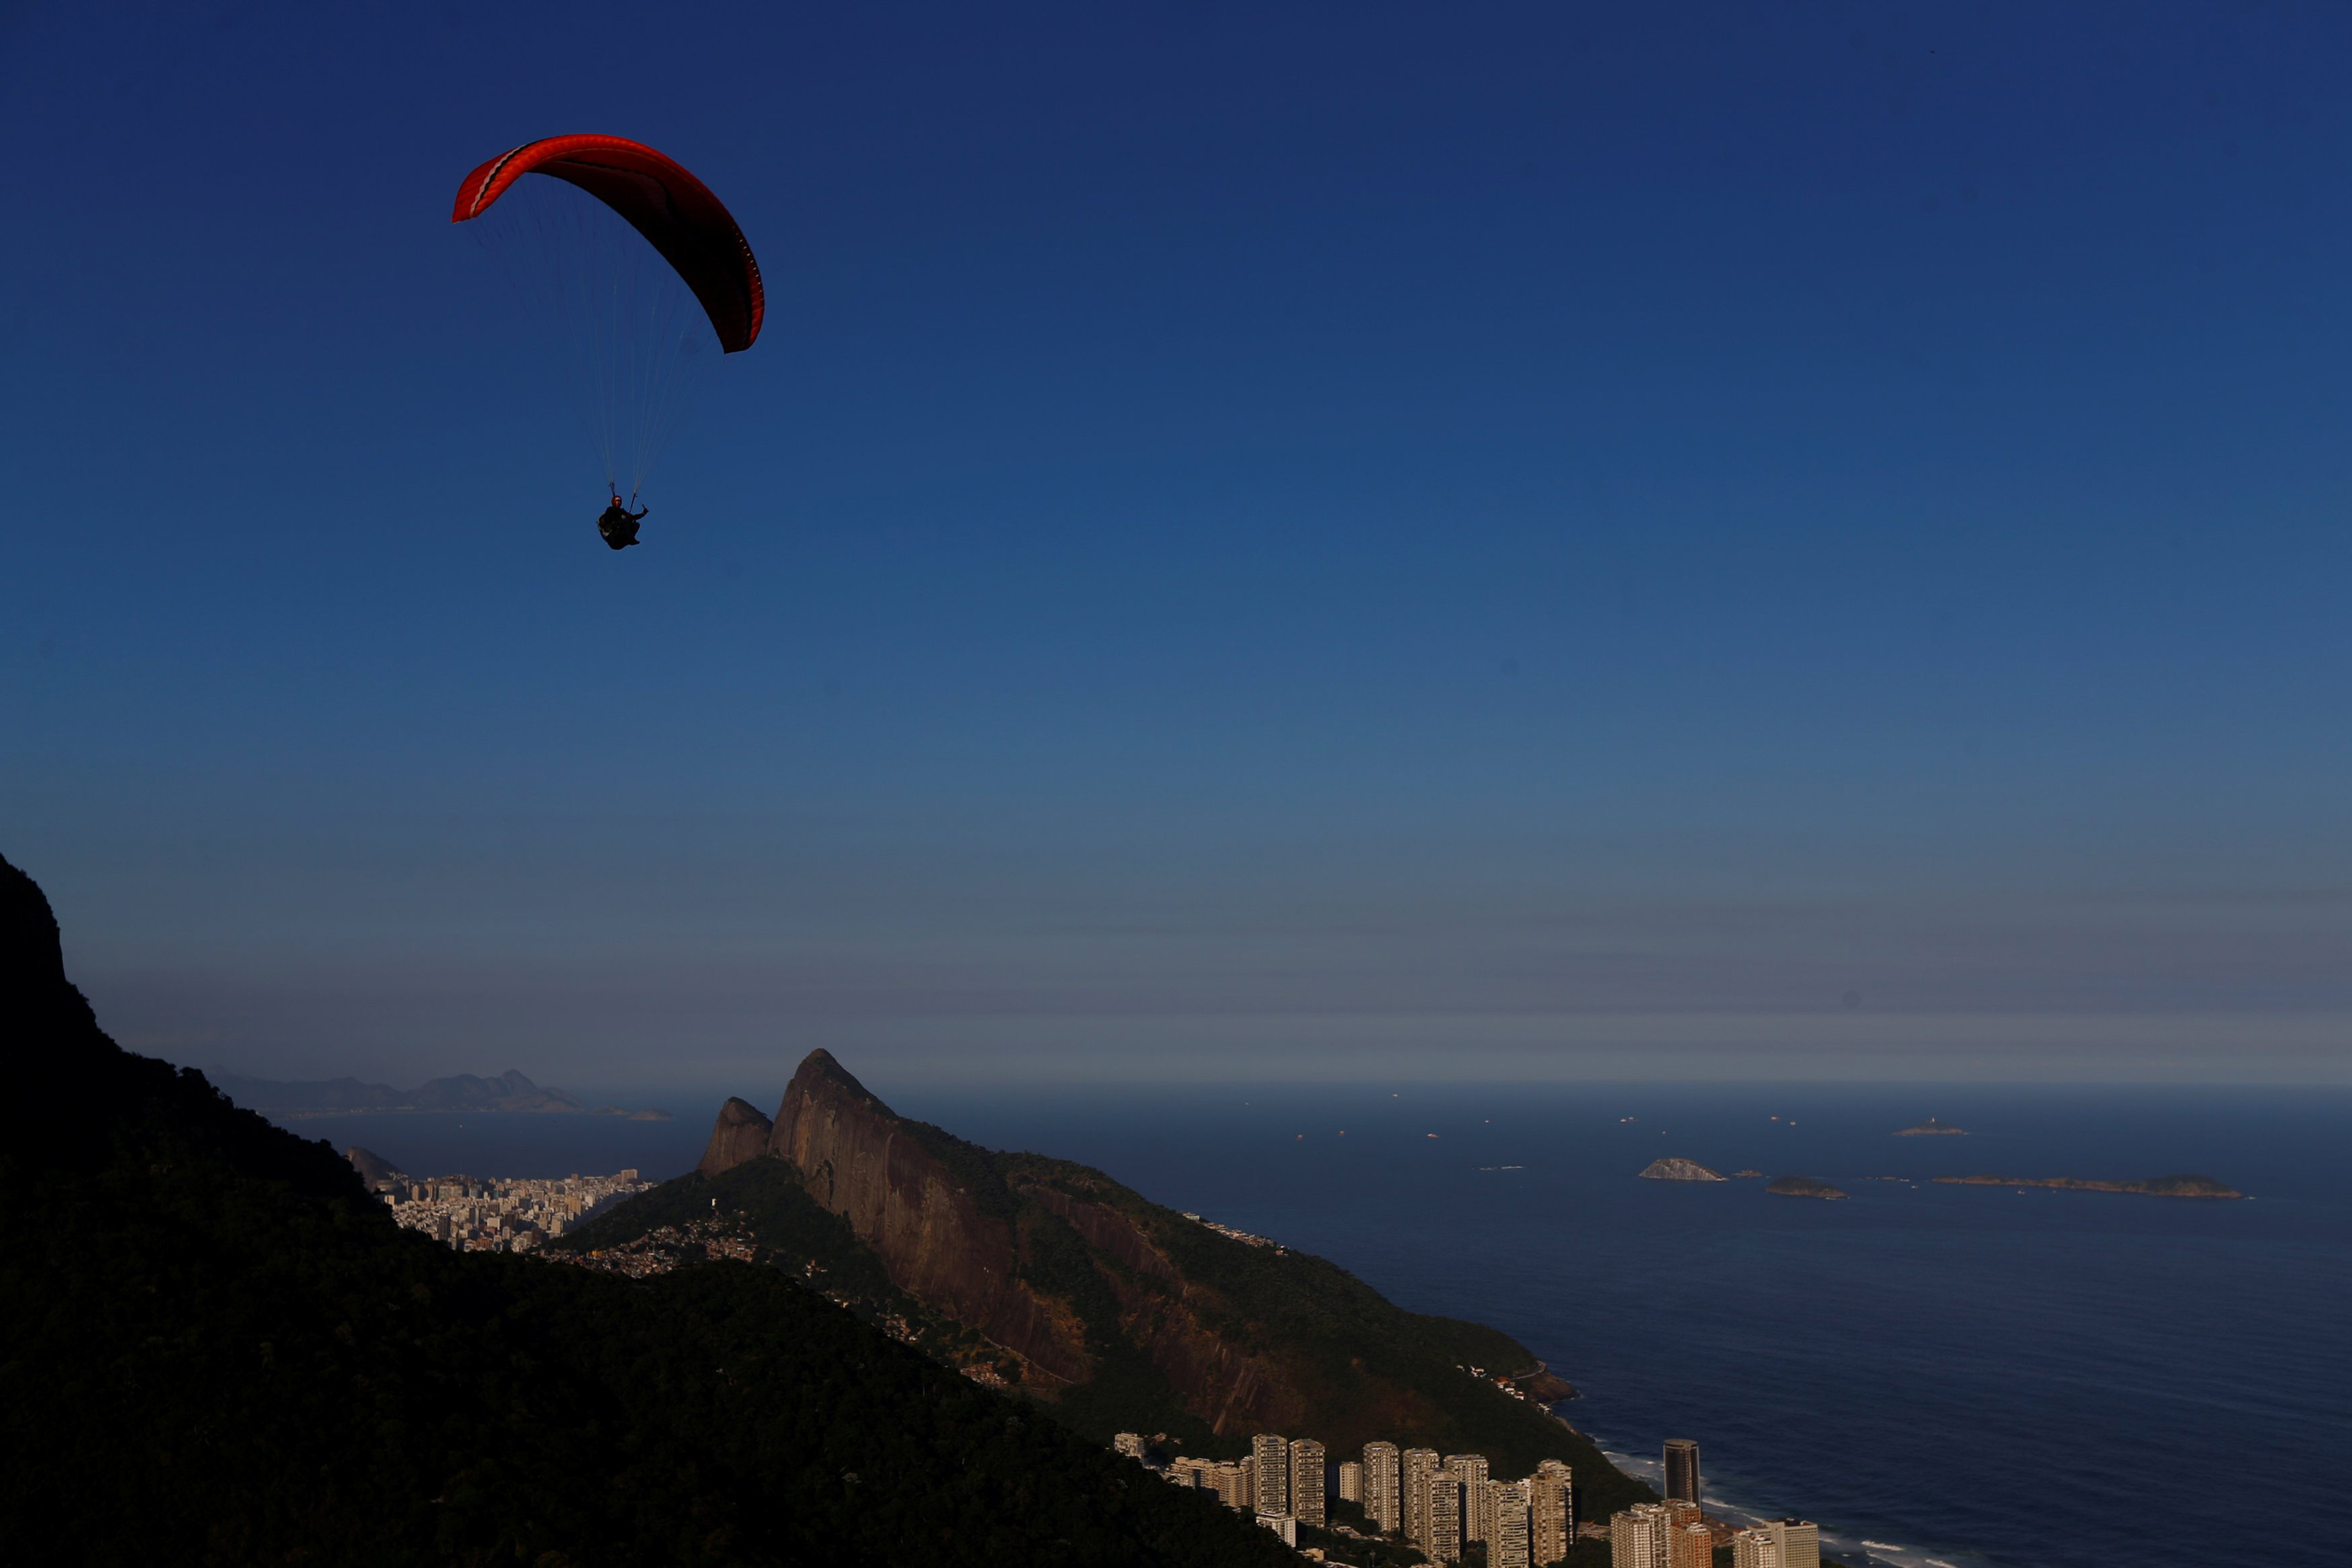 Morro Dois Irmao (Two Brothers Hill) is seen from Pedra Bonita mountain in Rio de Janeiro on May 3, 2016.